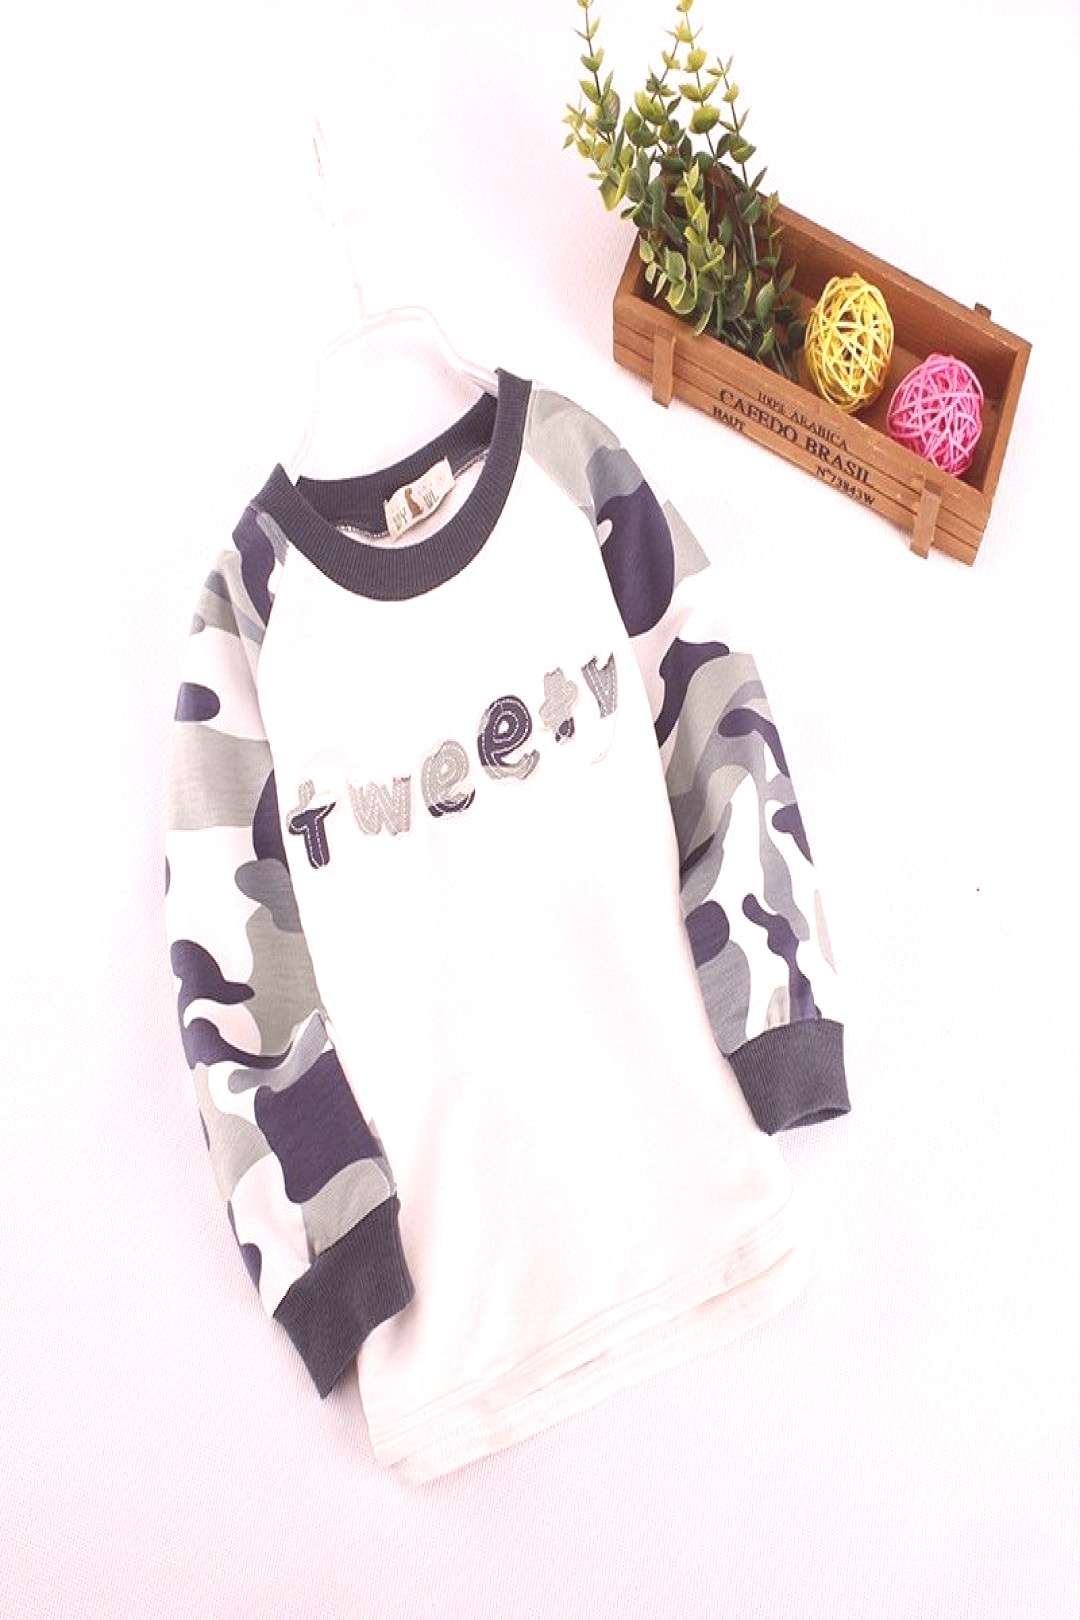 2017 Boys Pullovers Camouflage Sweaters Children Clothes High Quality Autumn/winter Warm Cartoon Ki